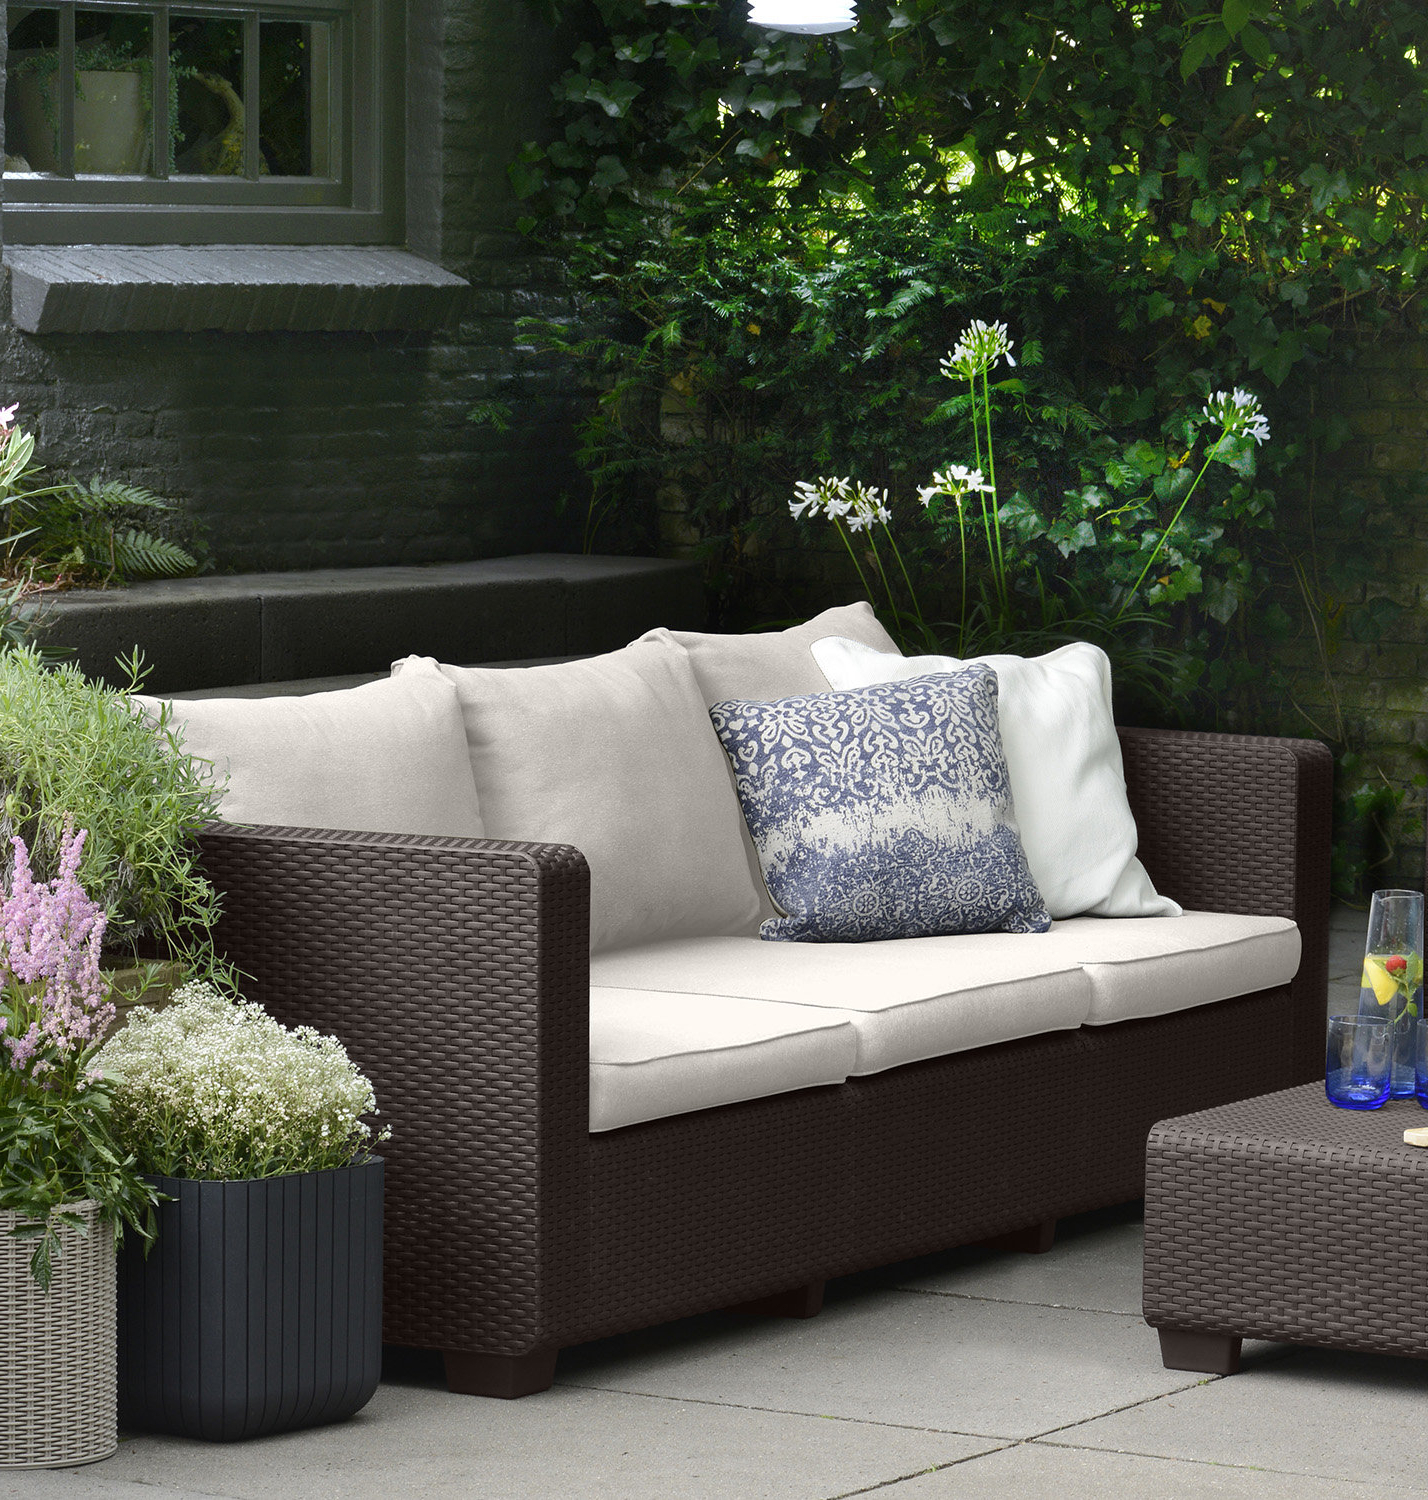 Favorite Katzer Patio Sofas With Cushions With Regard To Halloran Patio Sofa With Sunbrella Cushions (View 5 of 20)